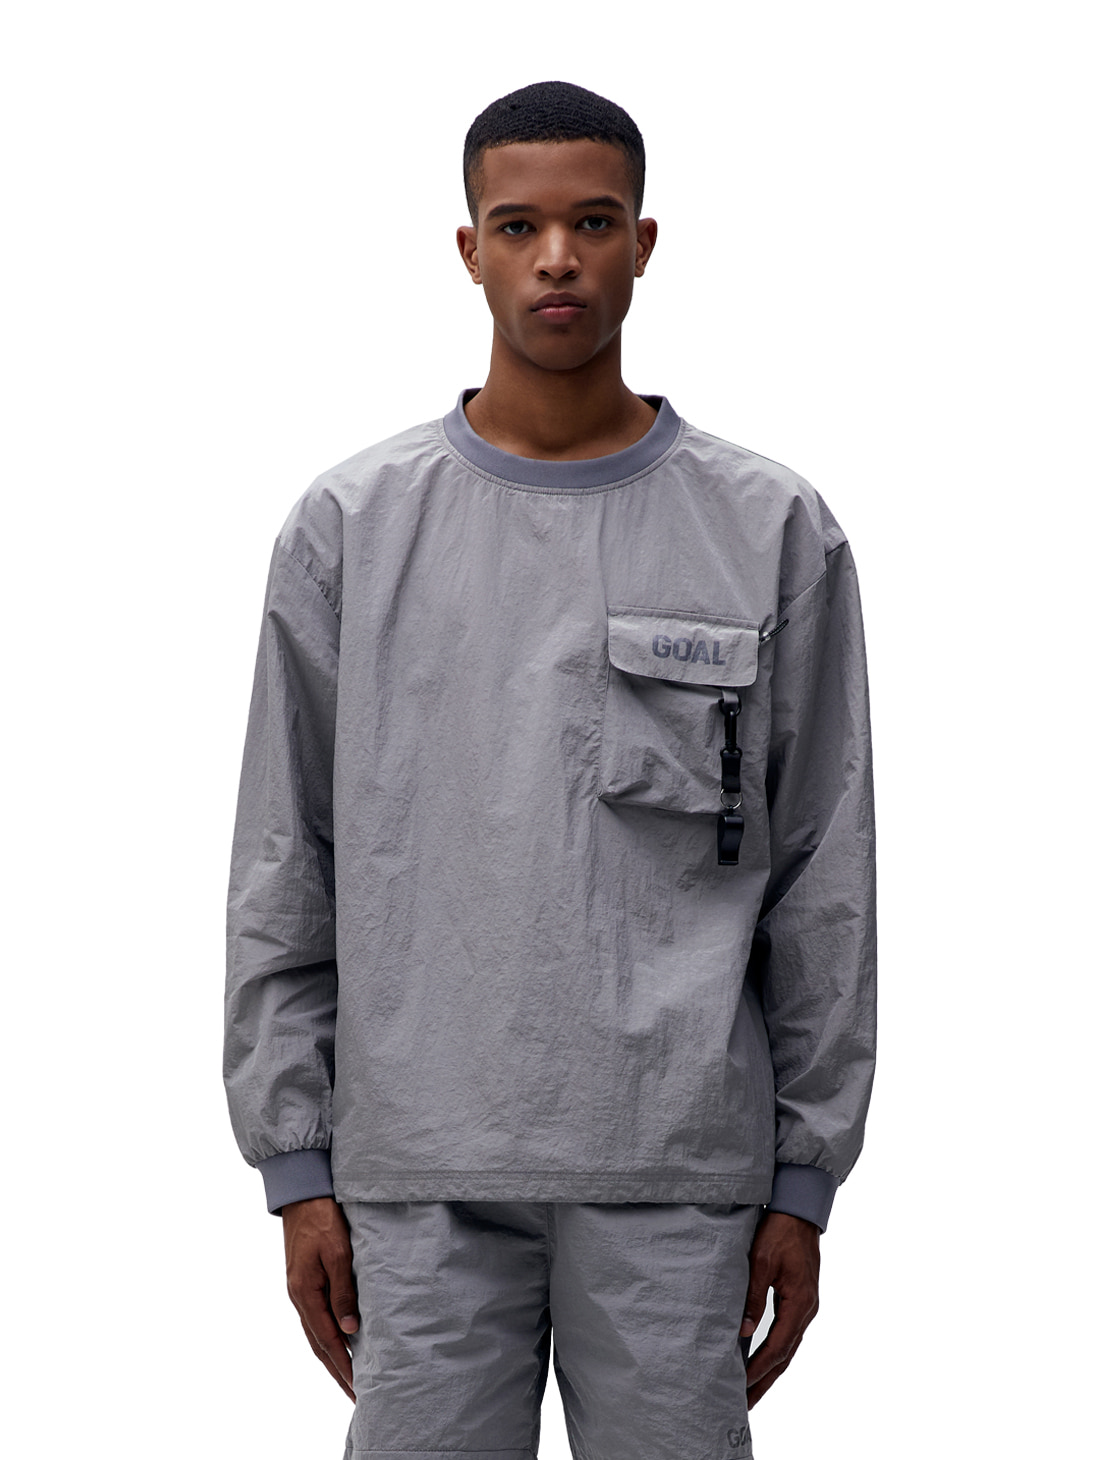 NYLON METAL POCKET LONG SLEEVE TEE - GREY